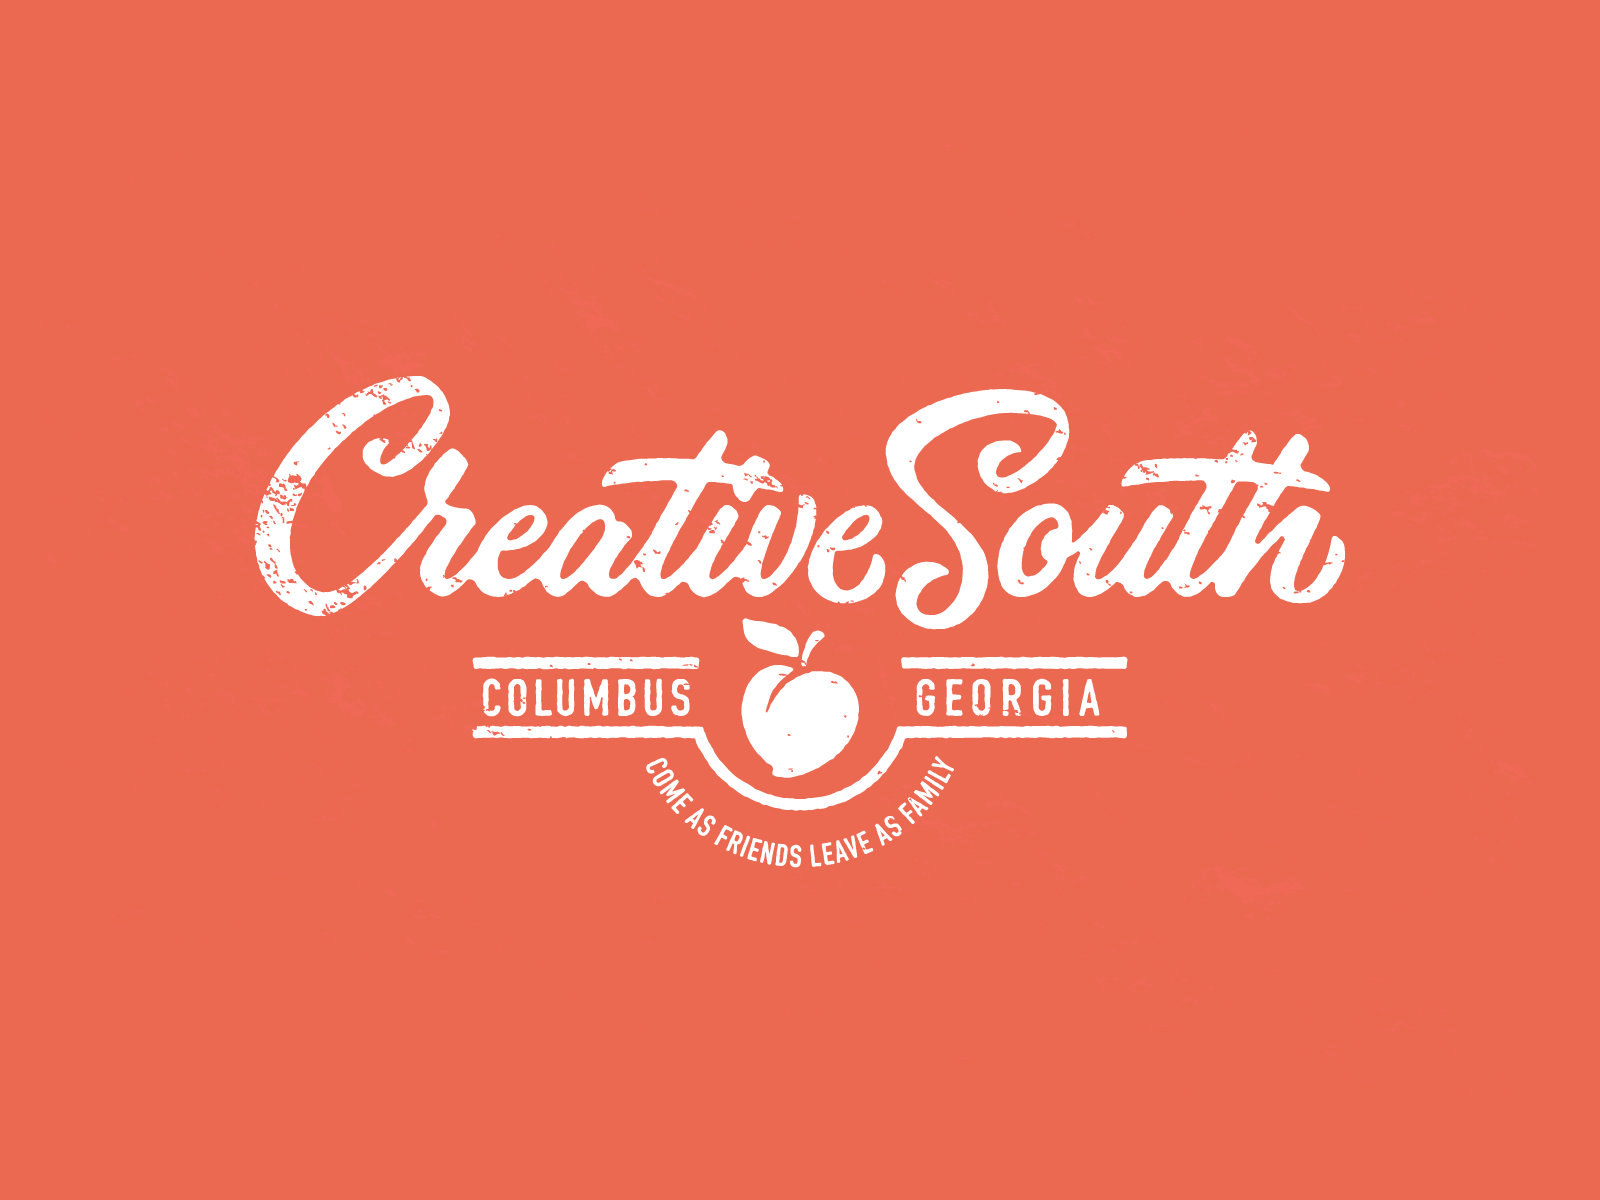 Hand Lettering & Workshop     Creative South     VIEW PROJECT